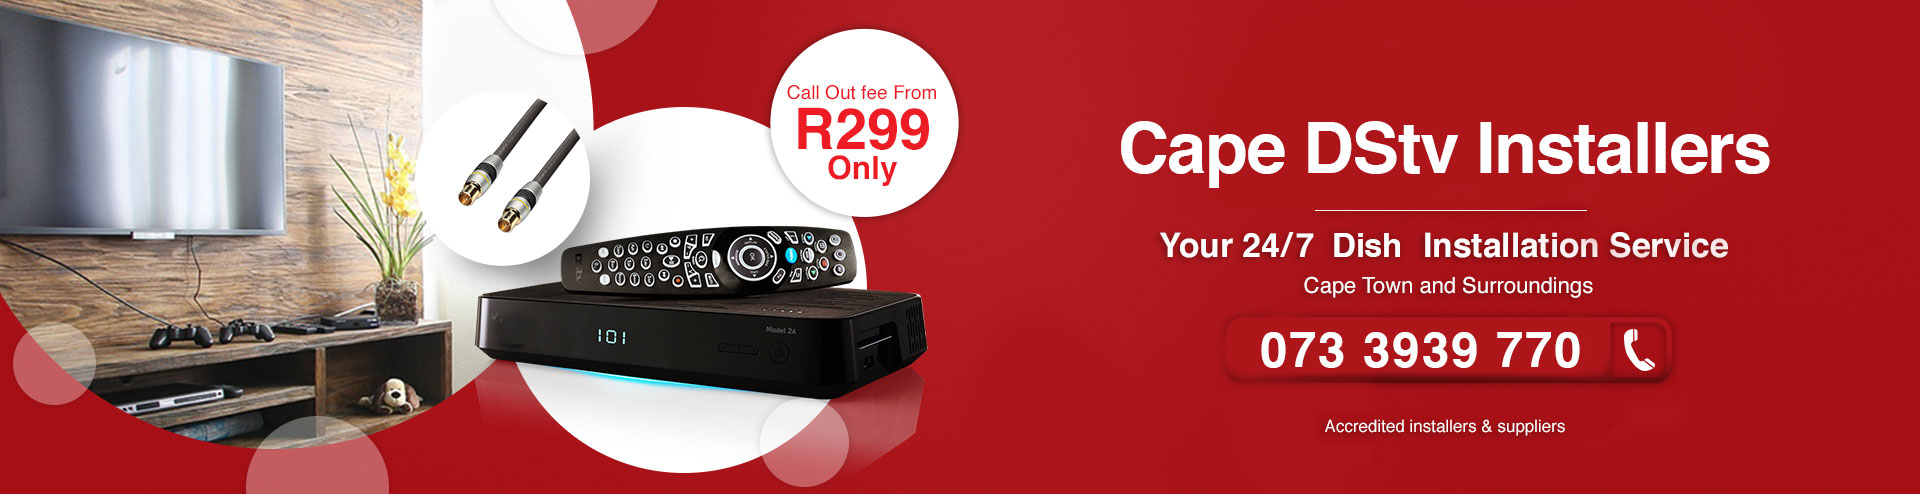 DSTV Installation & Signal Repairs. Call Out fee From R299 Only. Accredited installers & suppliers.